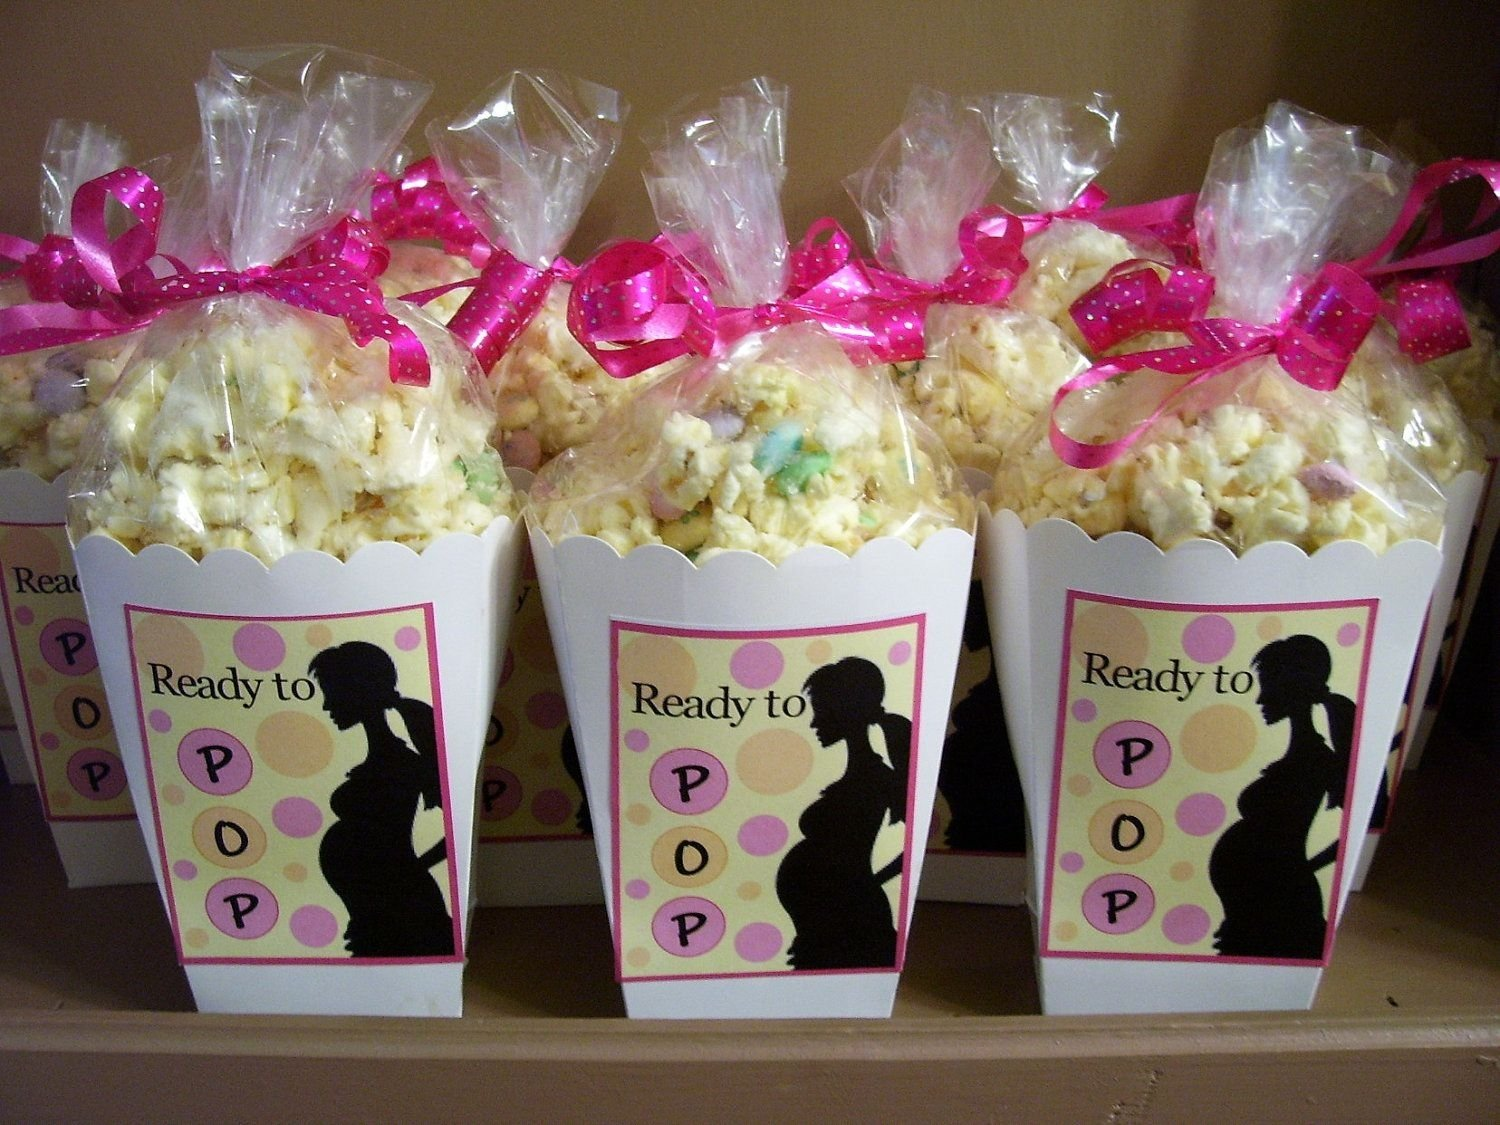 10 Attractive About To Pop Baby Shower Ideas baby shower ideas ready to pop baby shower favor boxes 2020